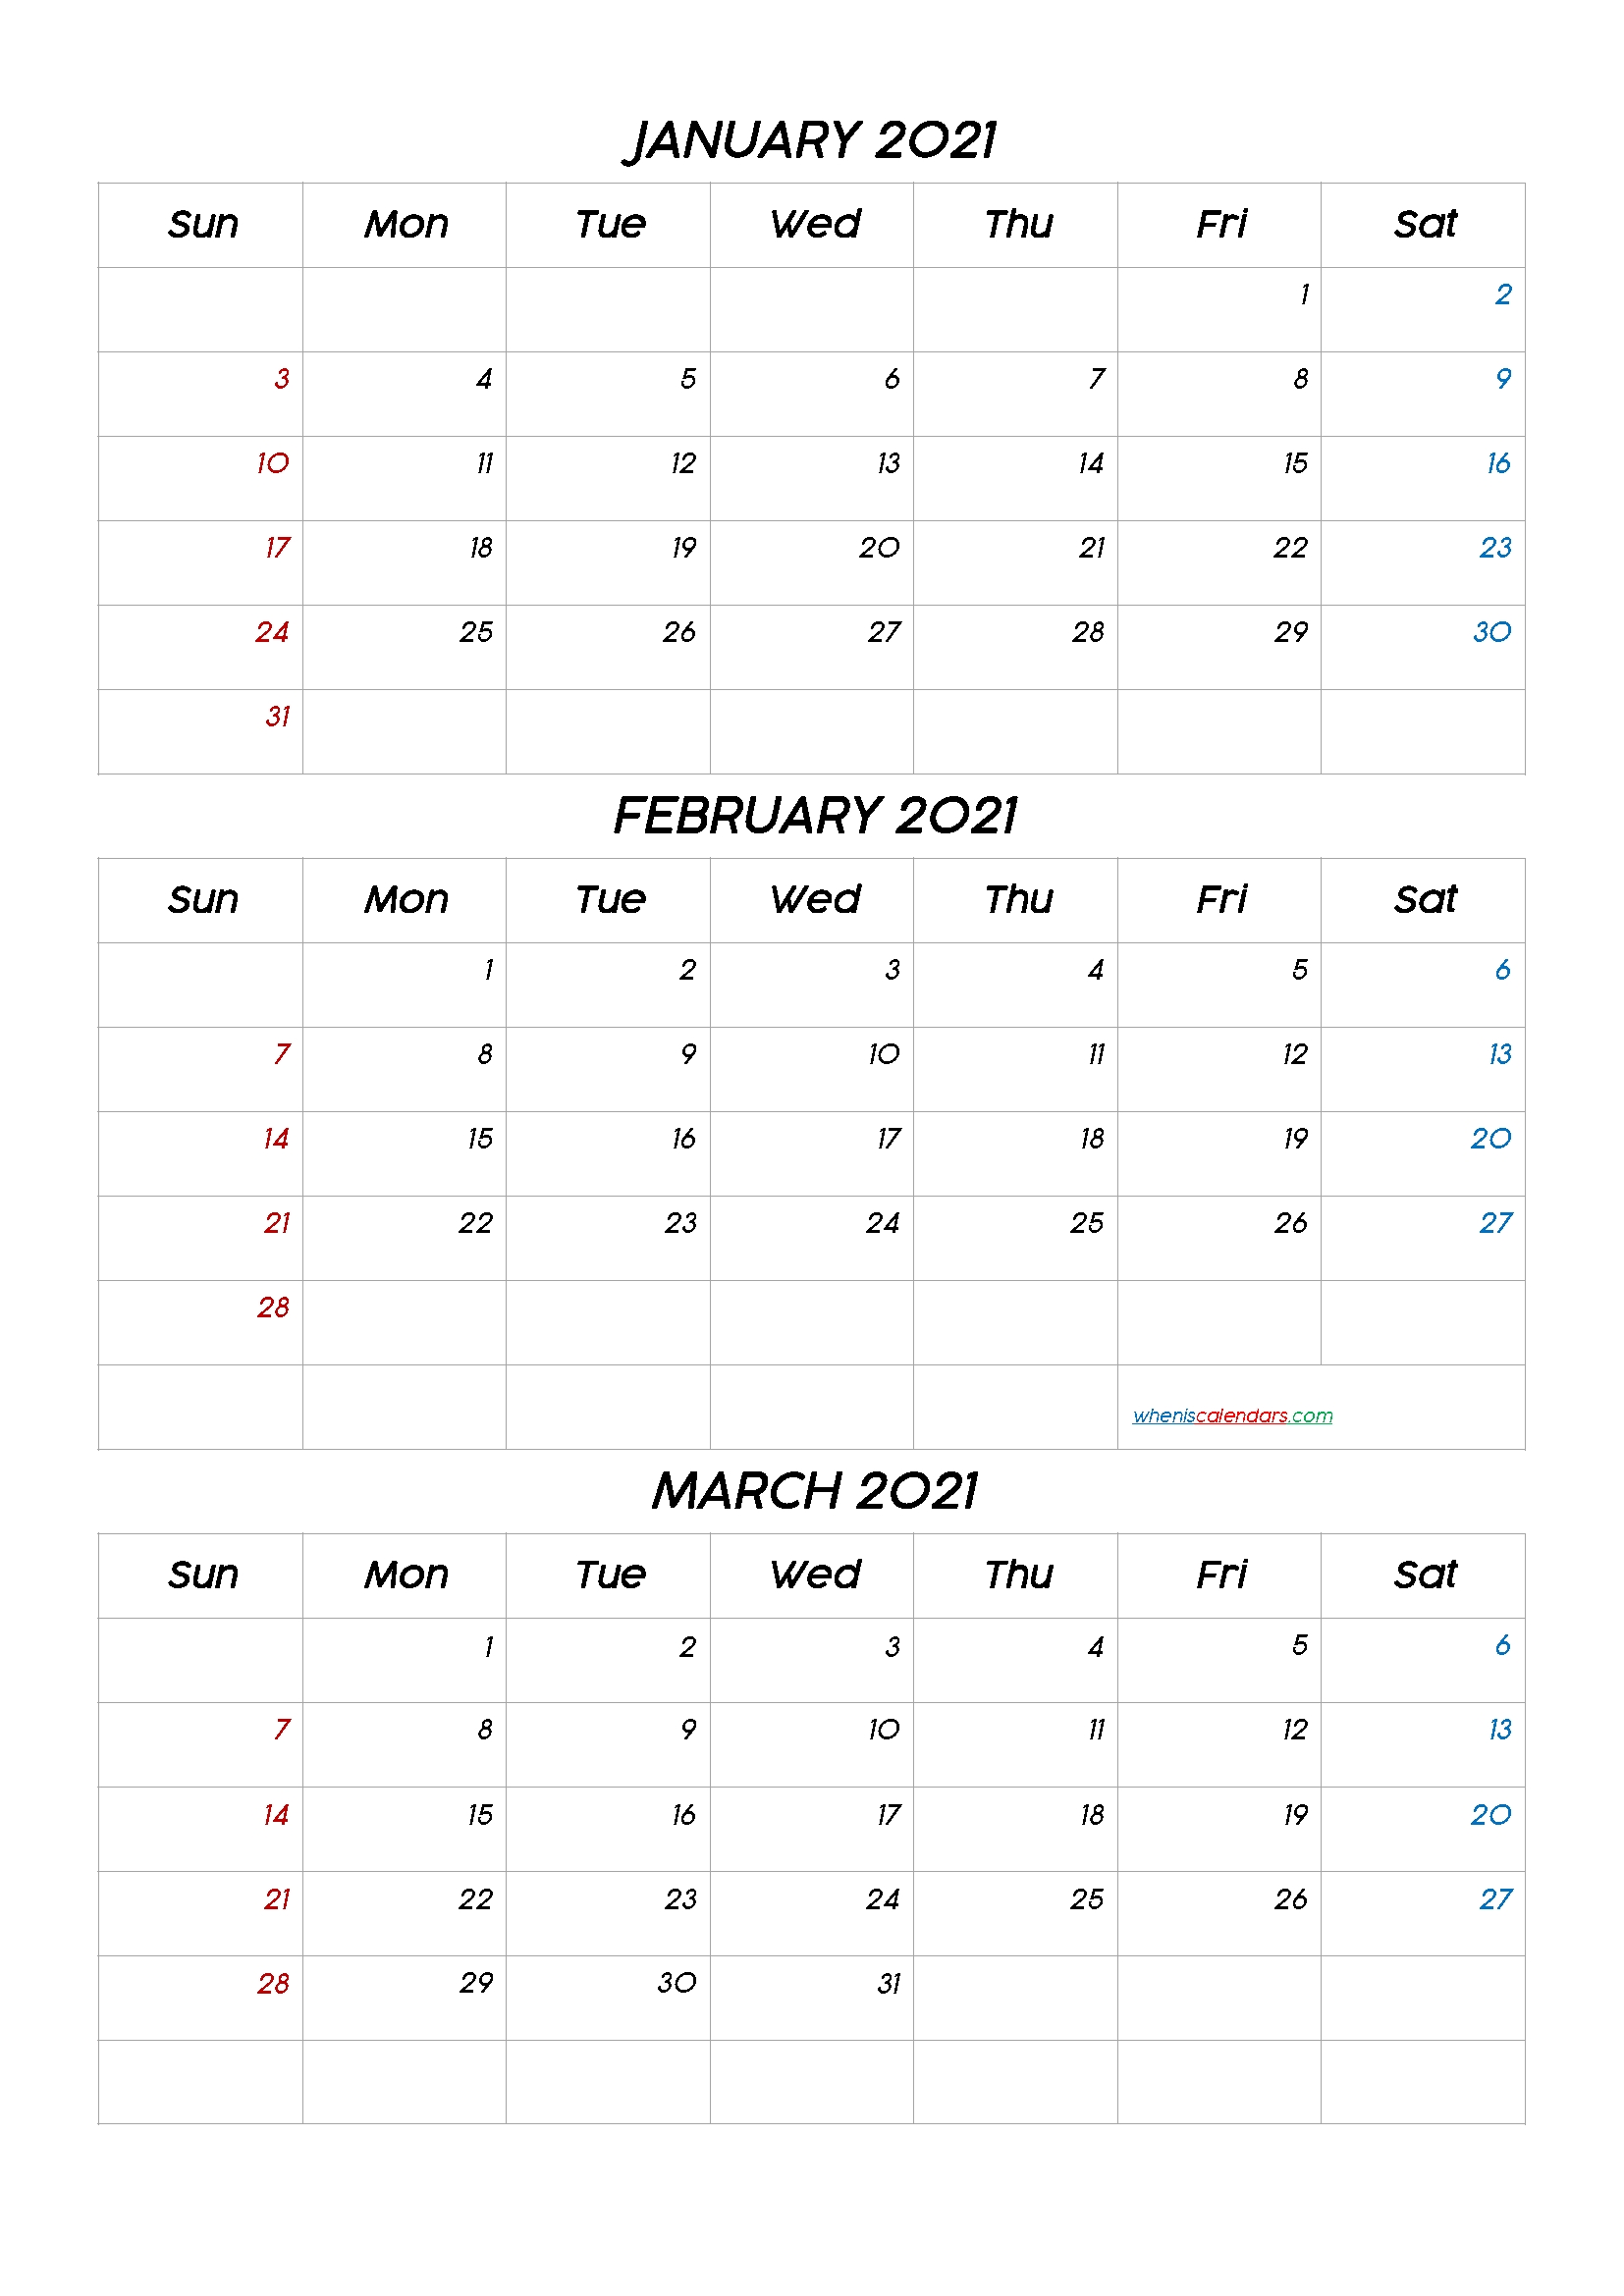 Get Jan Feb Mar 2021 Calendar